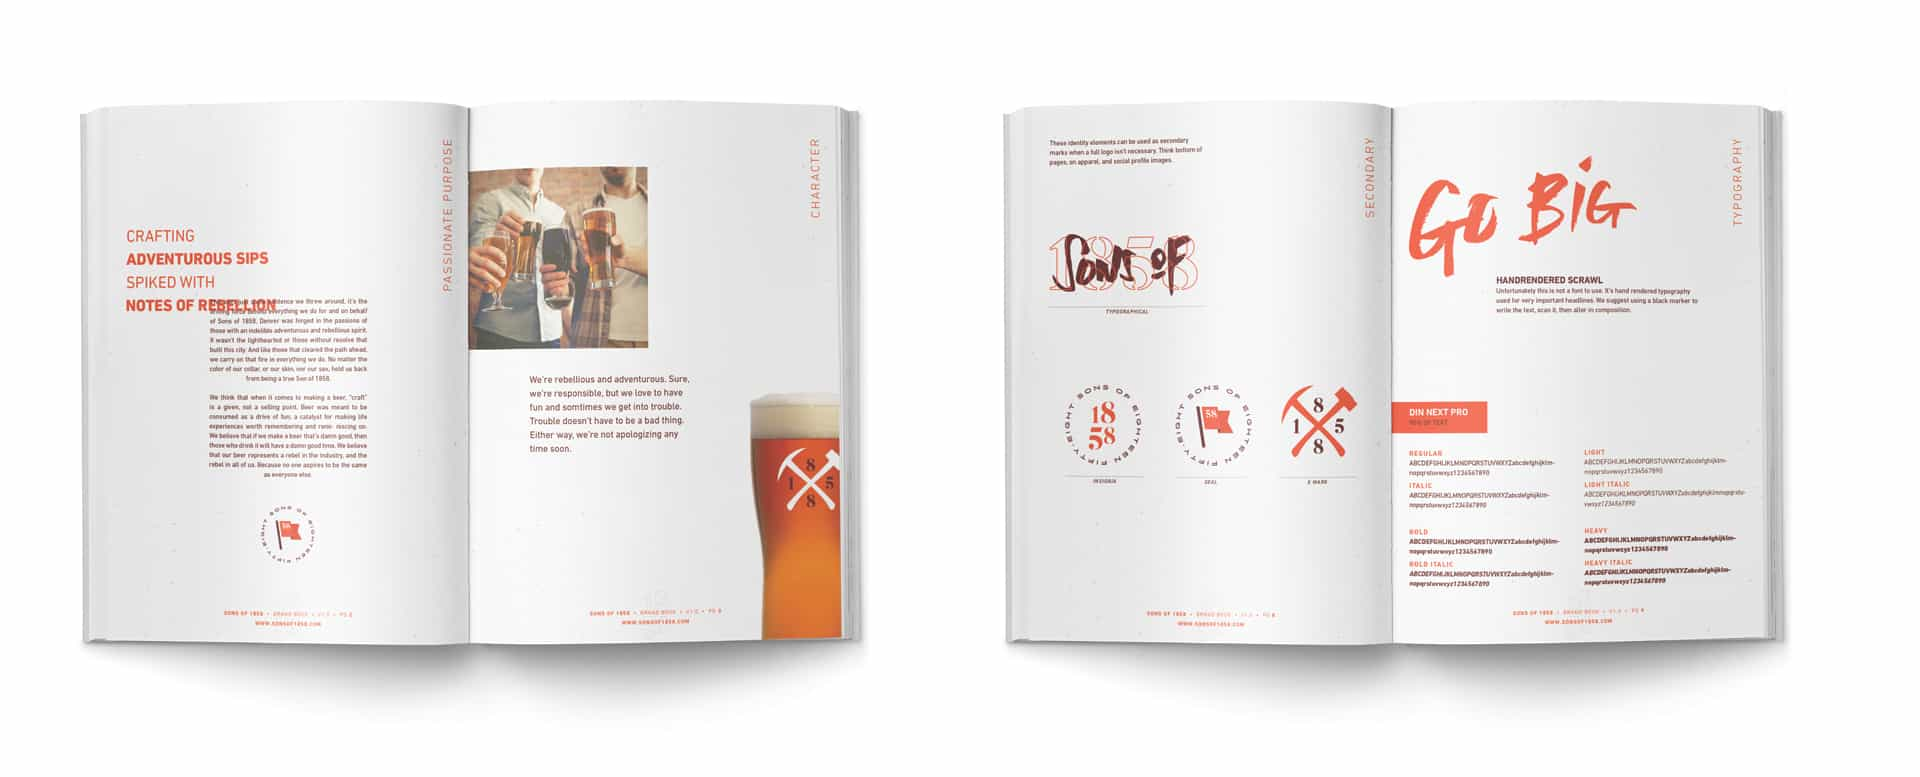 Sons of 1858 craft beer branding, packaging and design brand standards book design